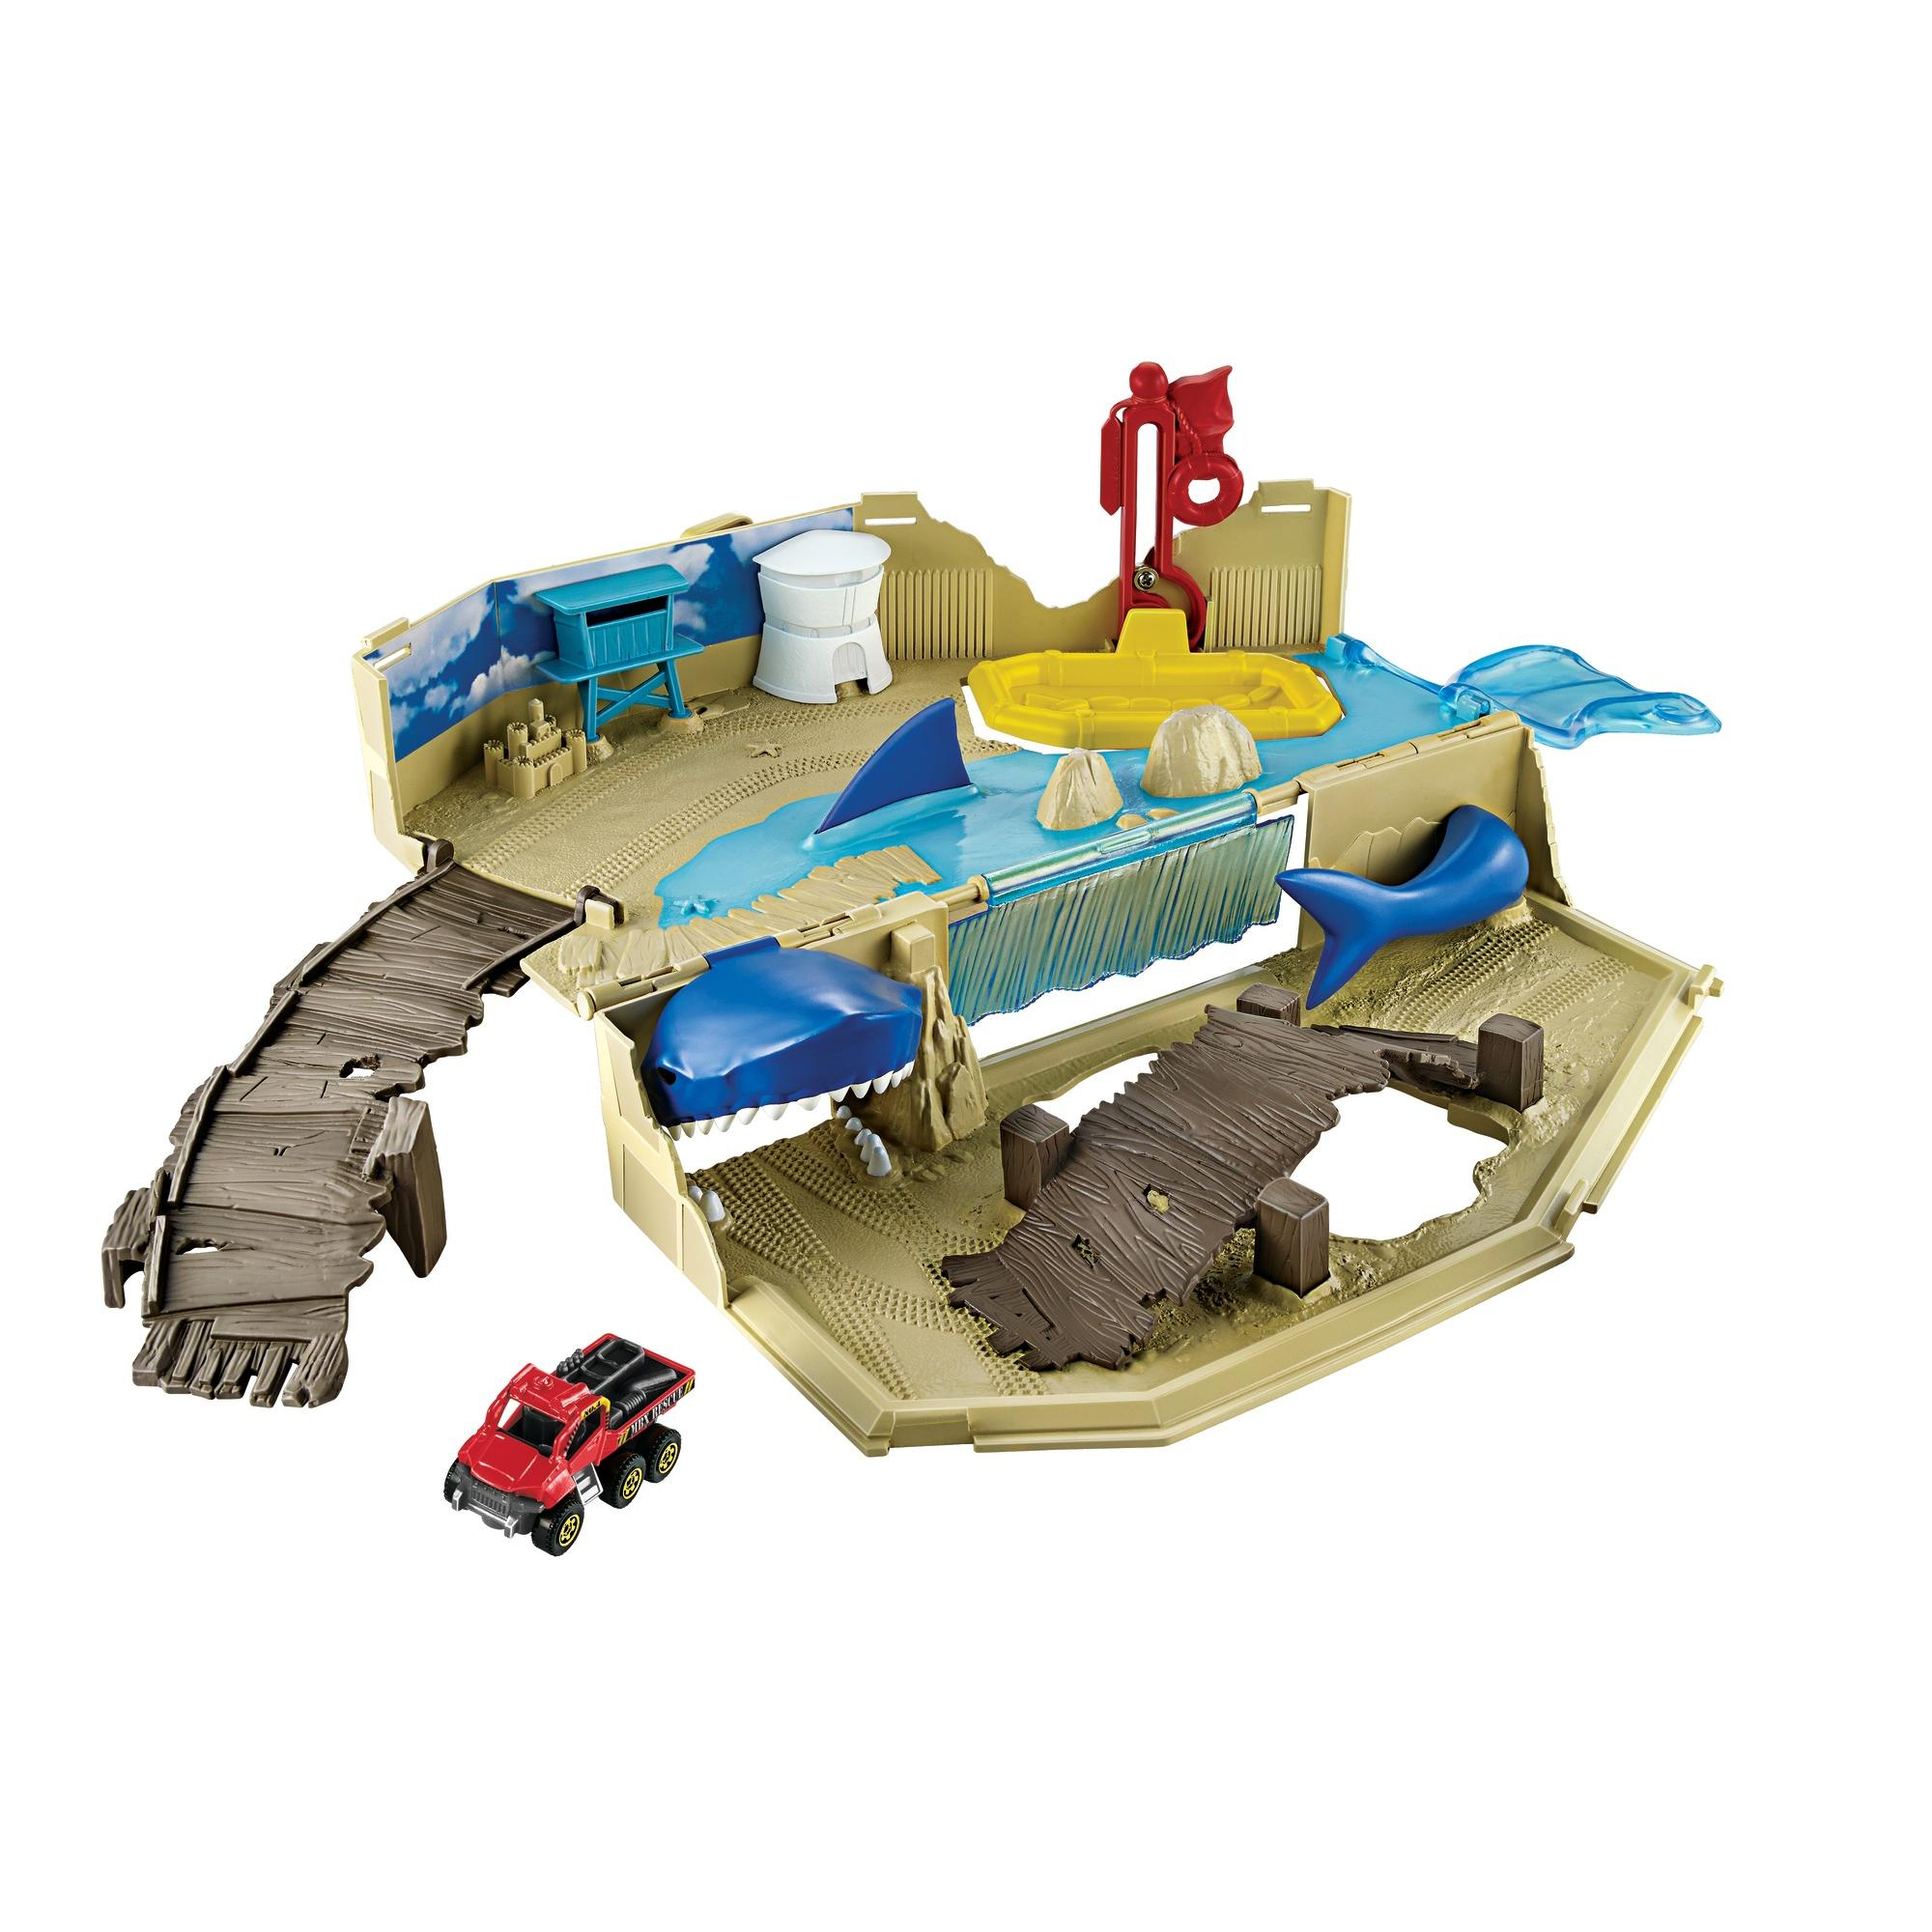 Matchbox Beach Bait Play Set with 1-Vehicle Included